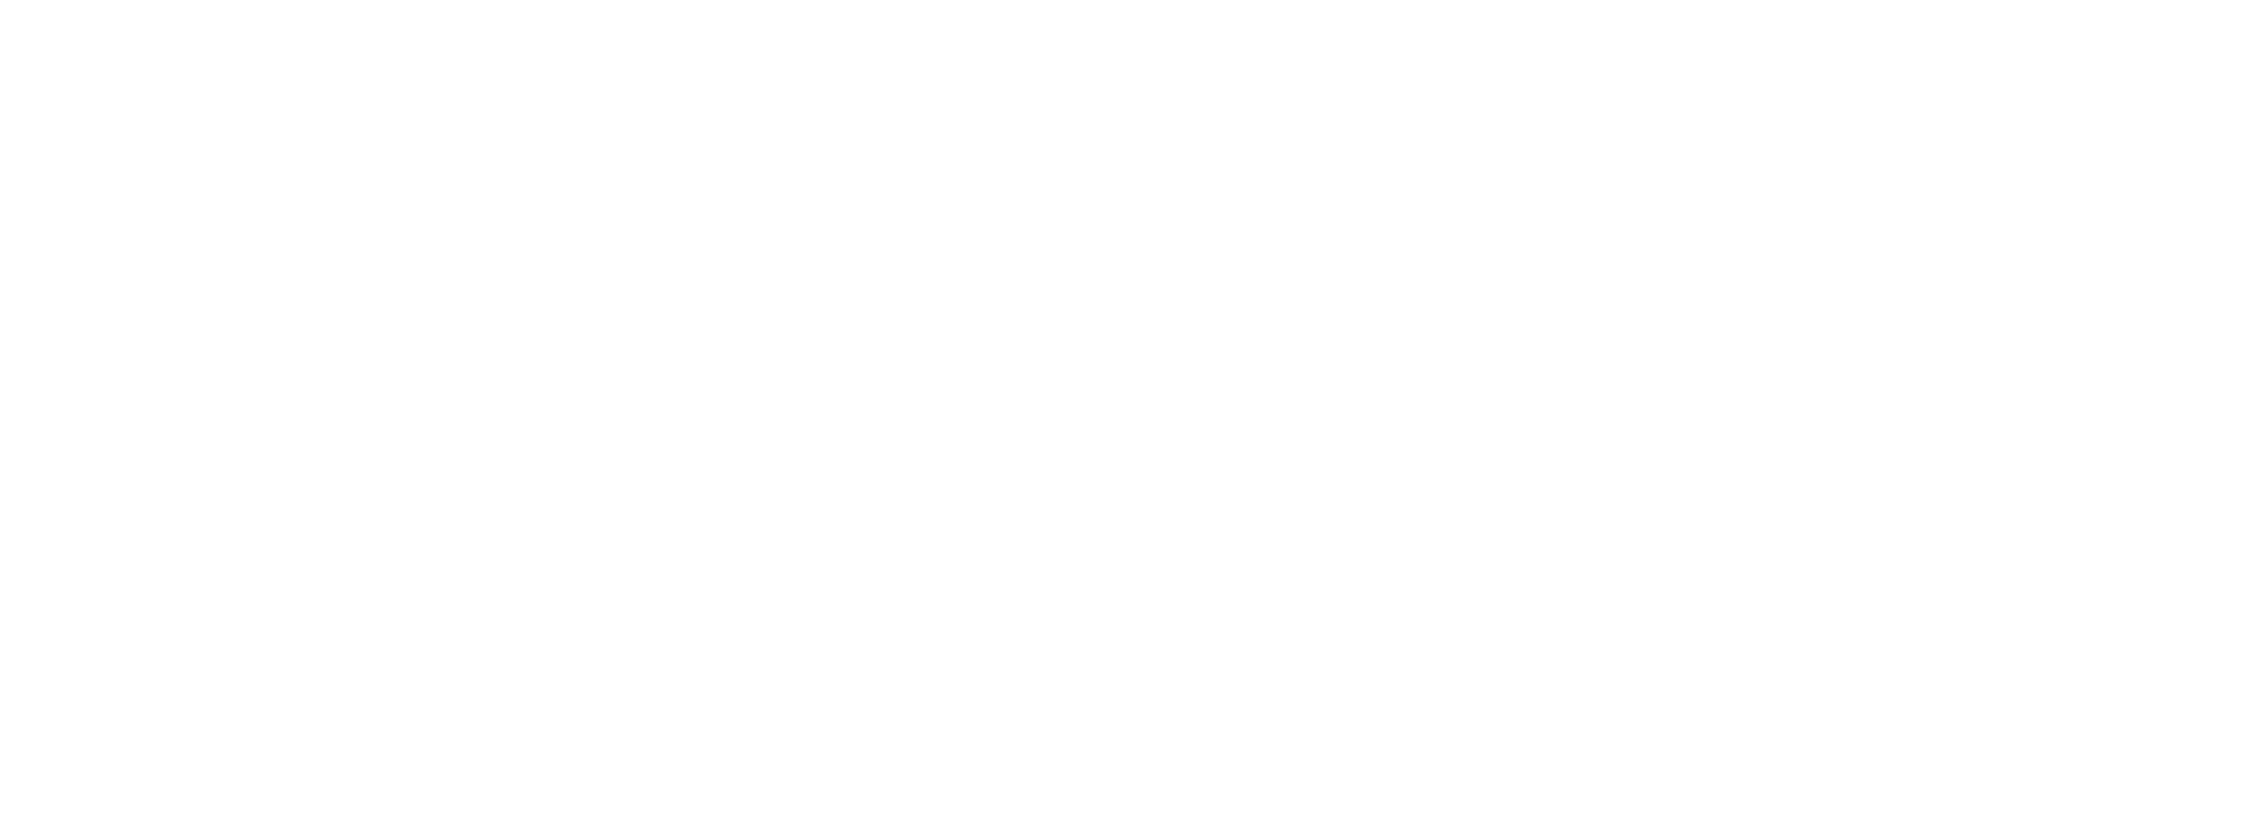 Brownsville Born - A Film By Tom Gould